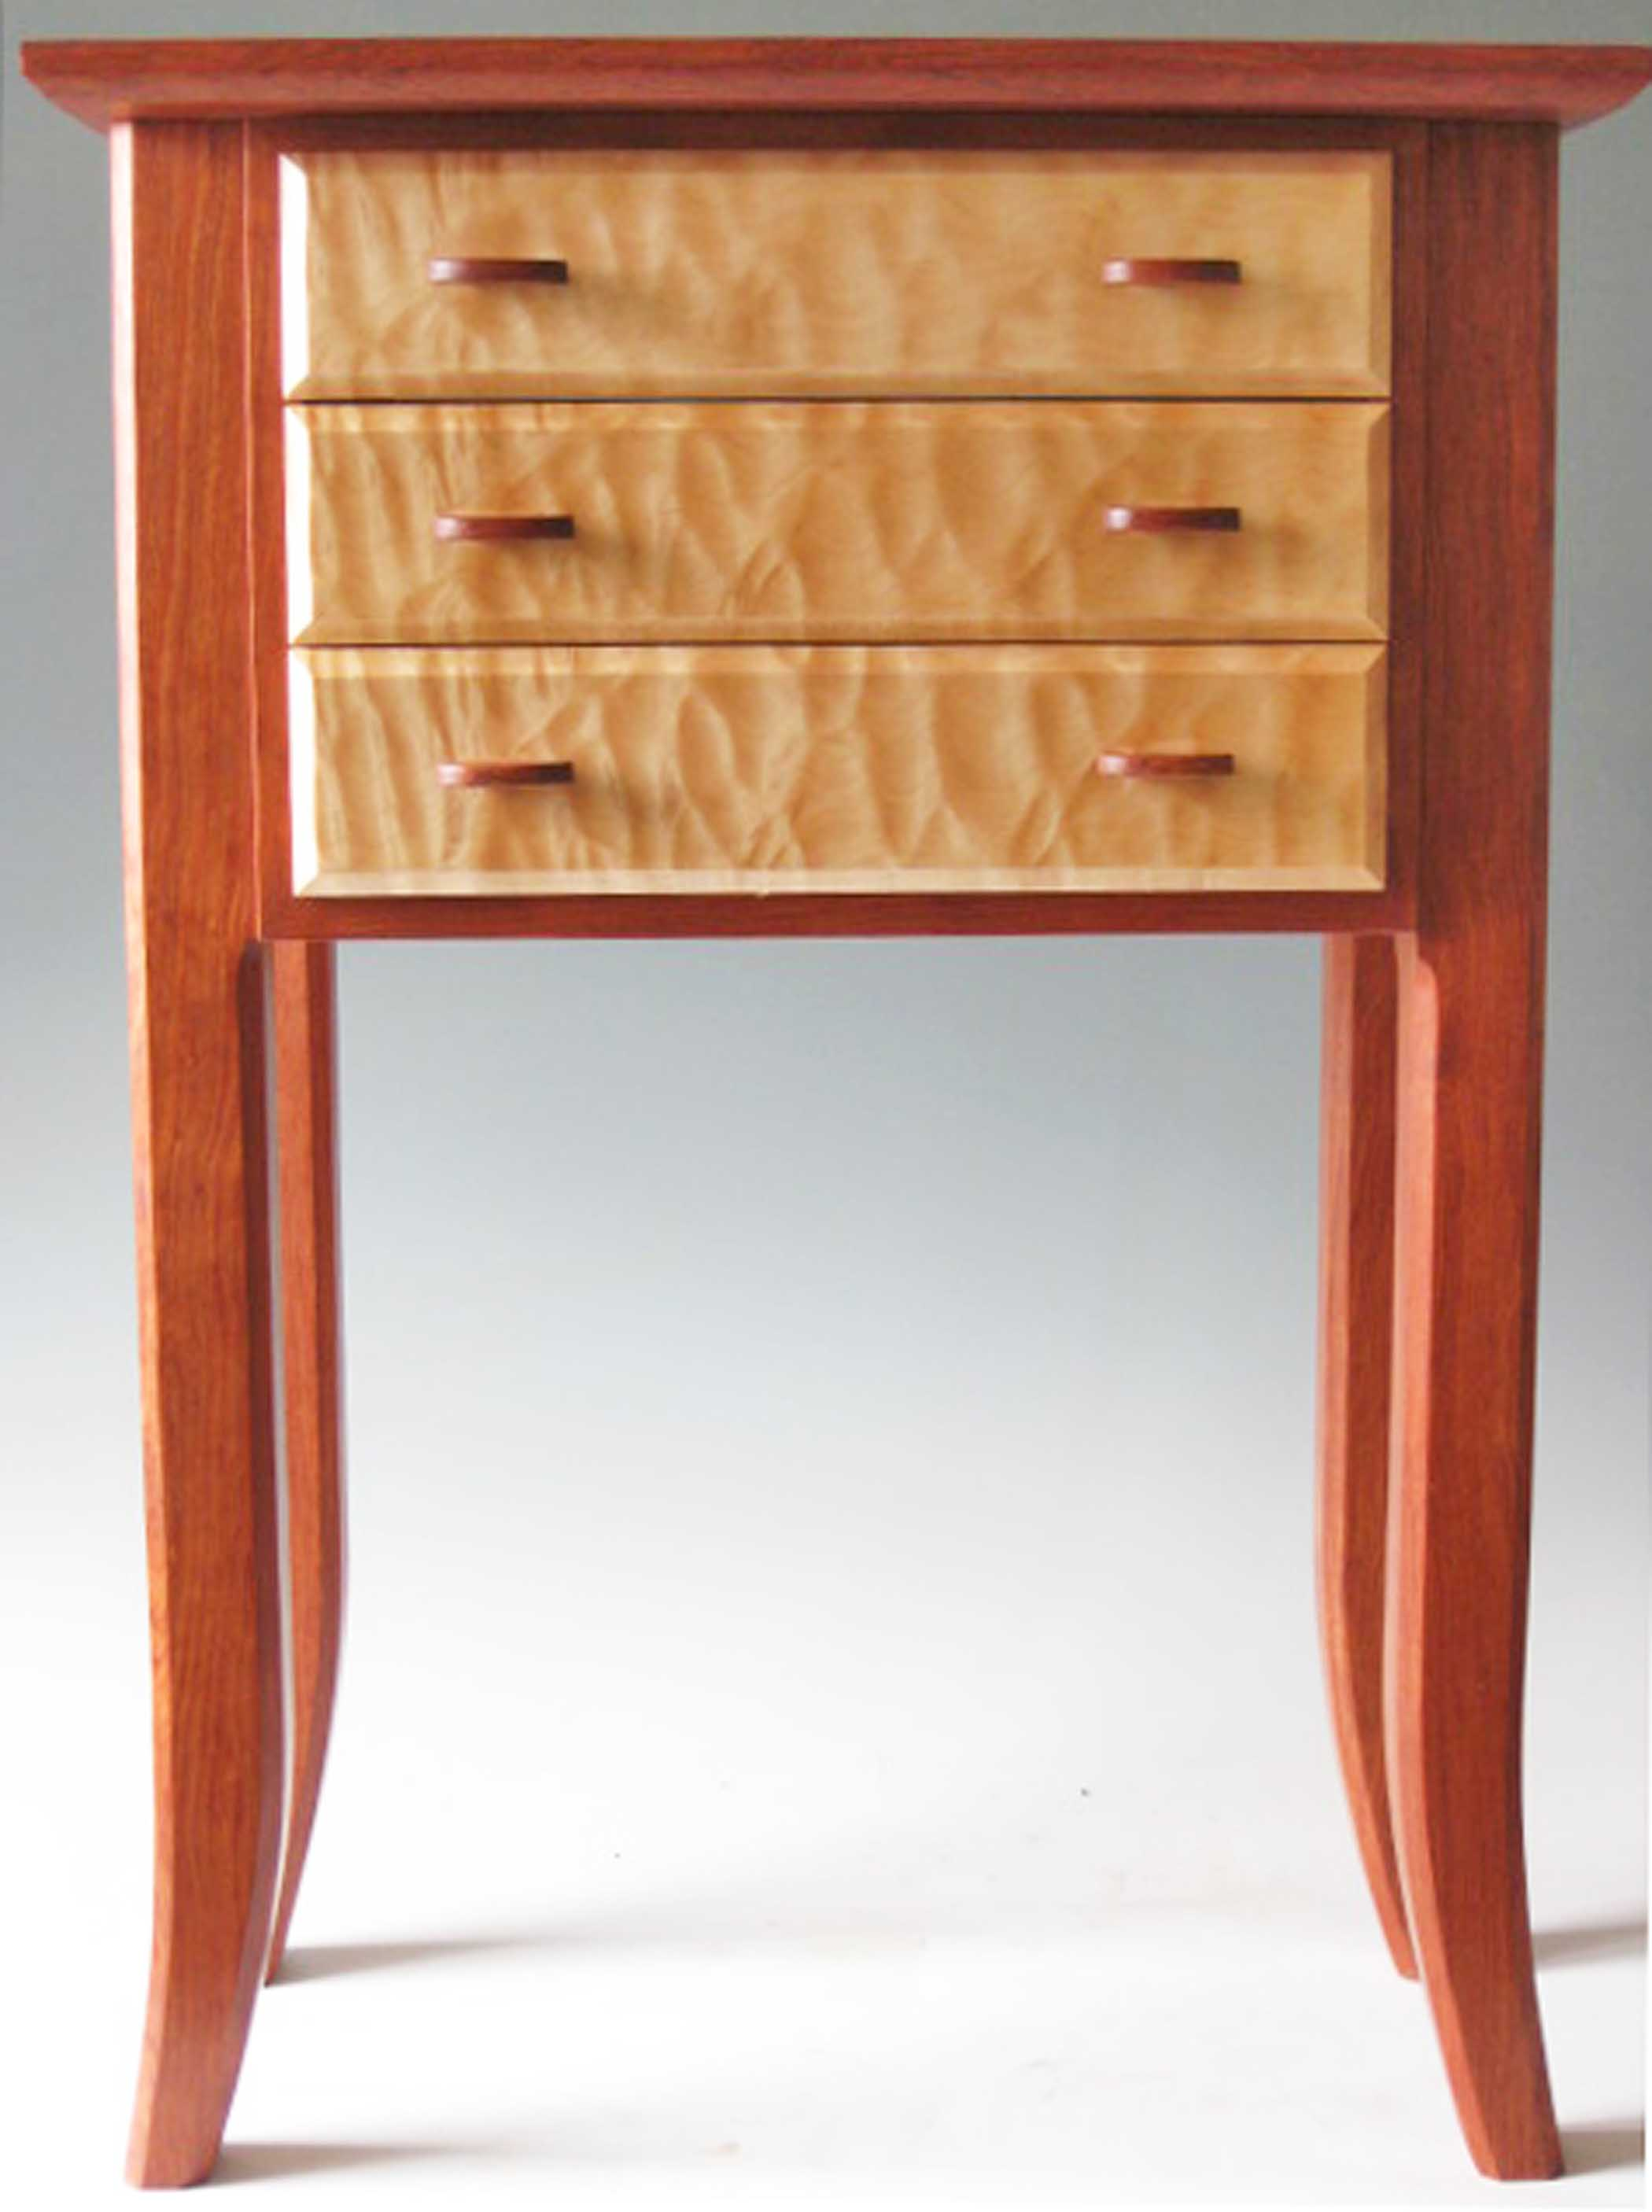 Handmade wooden base table that holds large jewelry armoire box